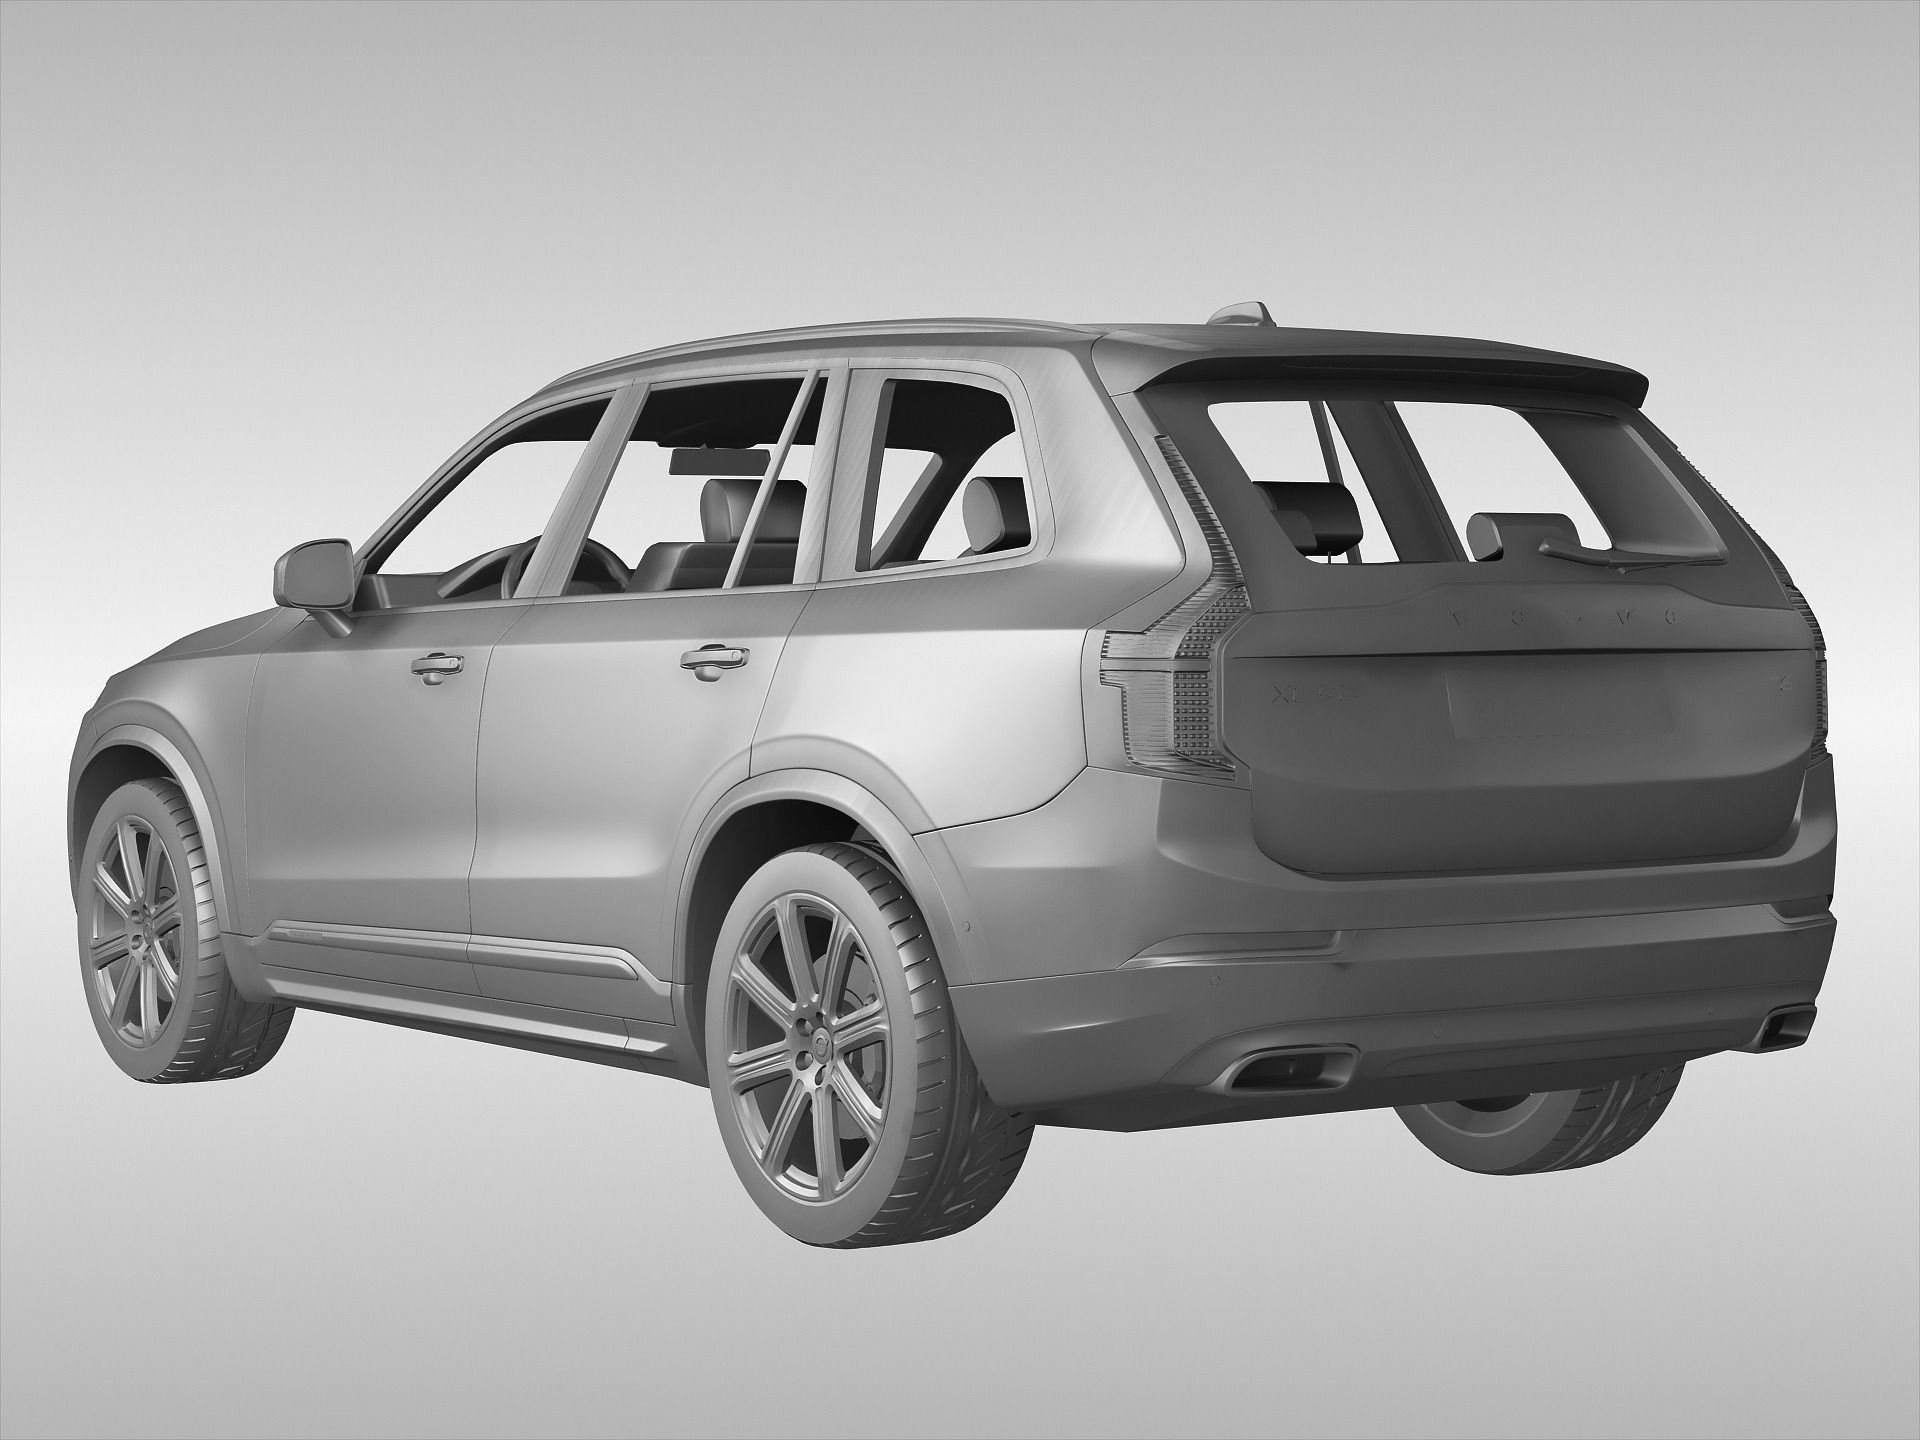 volvo xc90 2015 3d model max obj 3ds fbx cgtrader. Black Bedroom Furniture Sets. Home Design Ideas